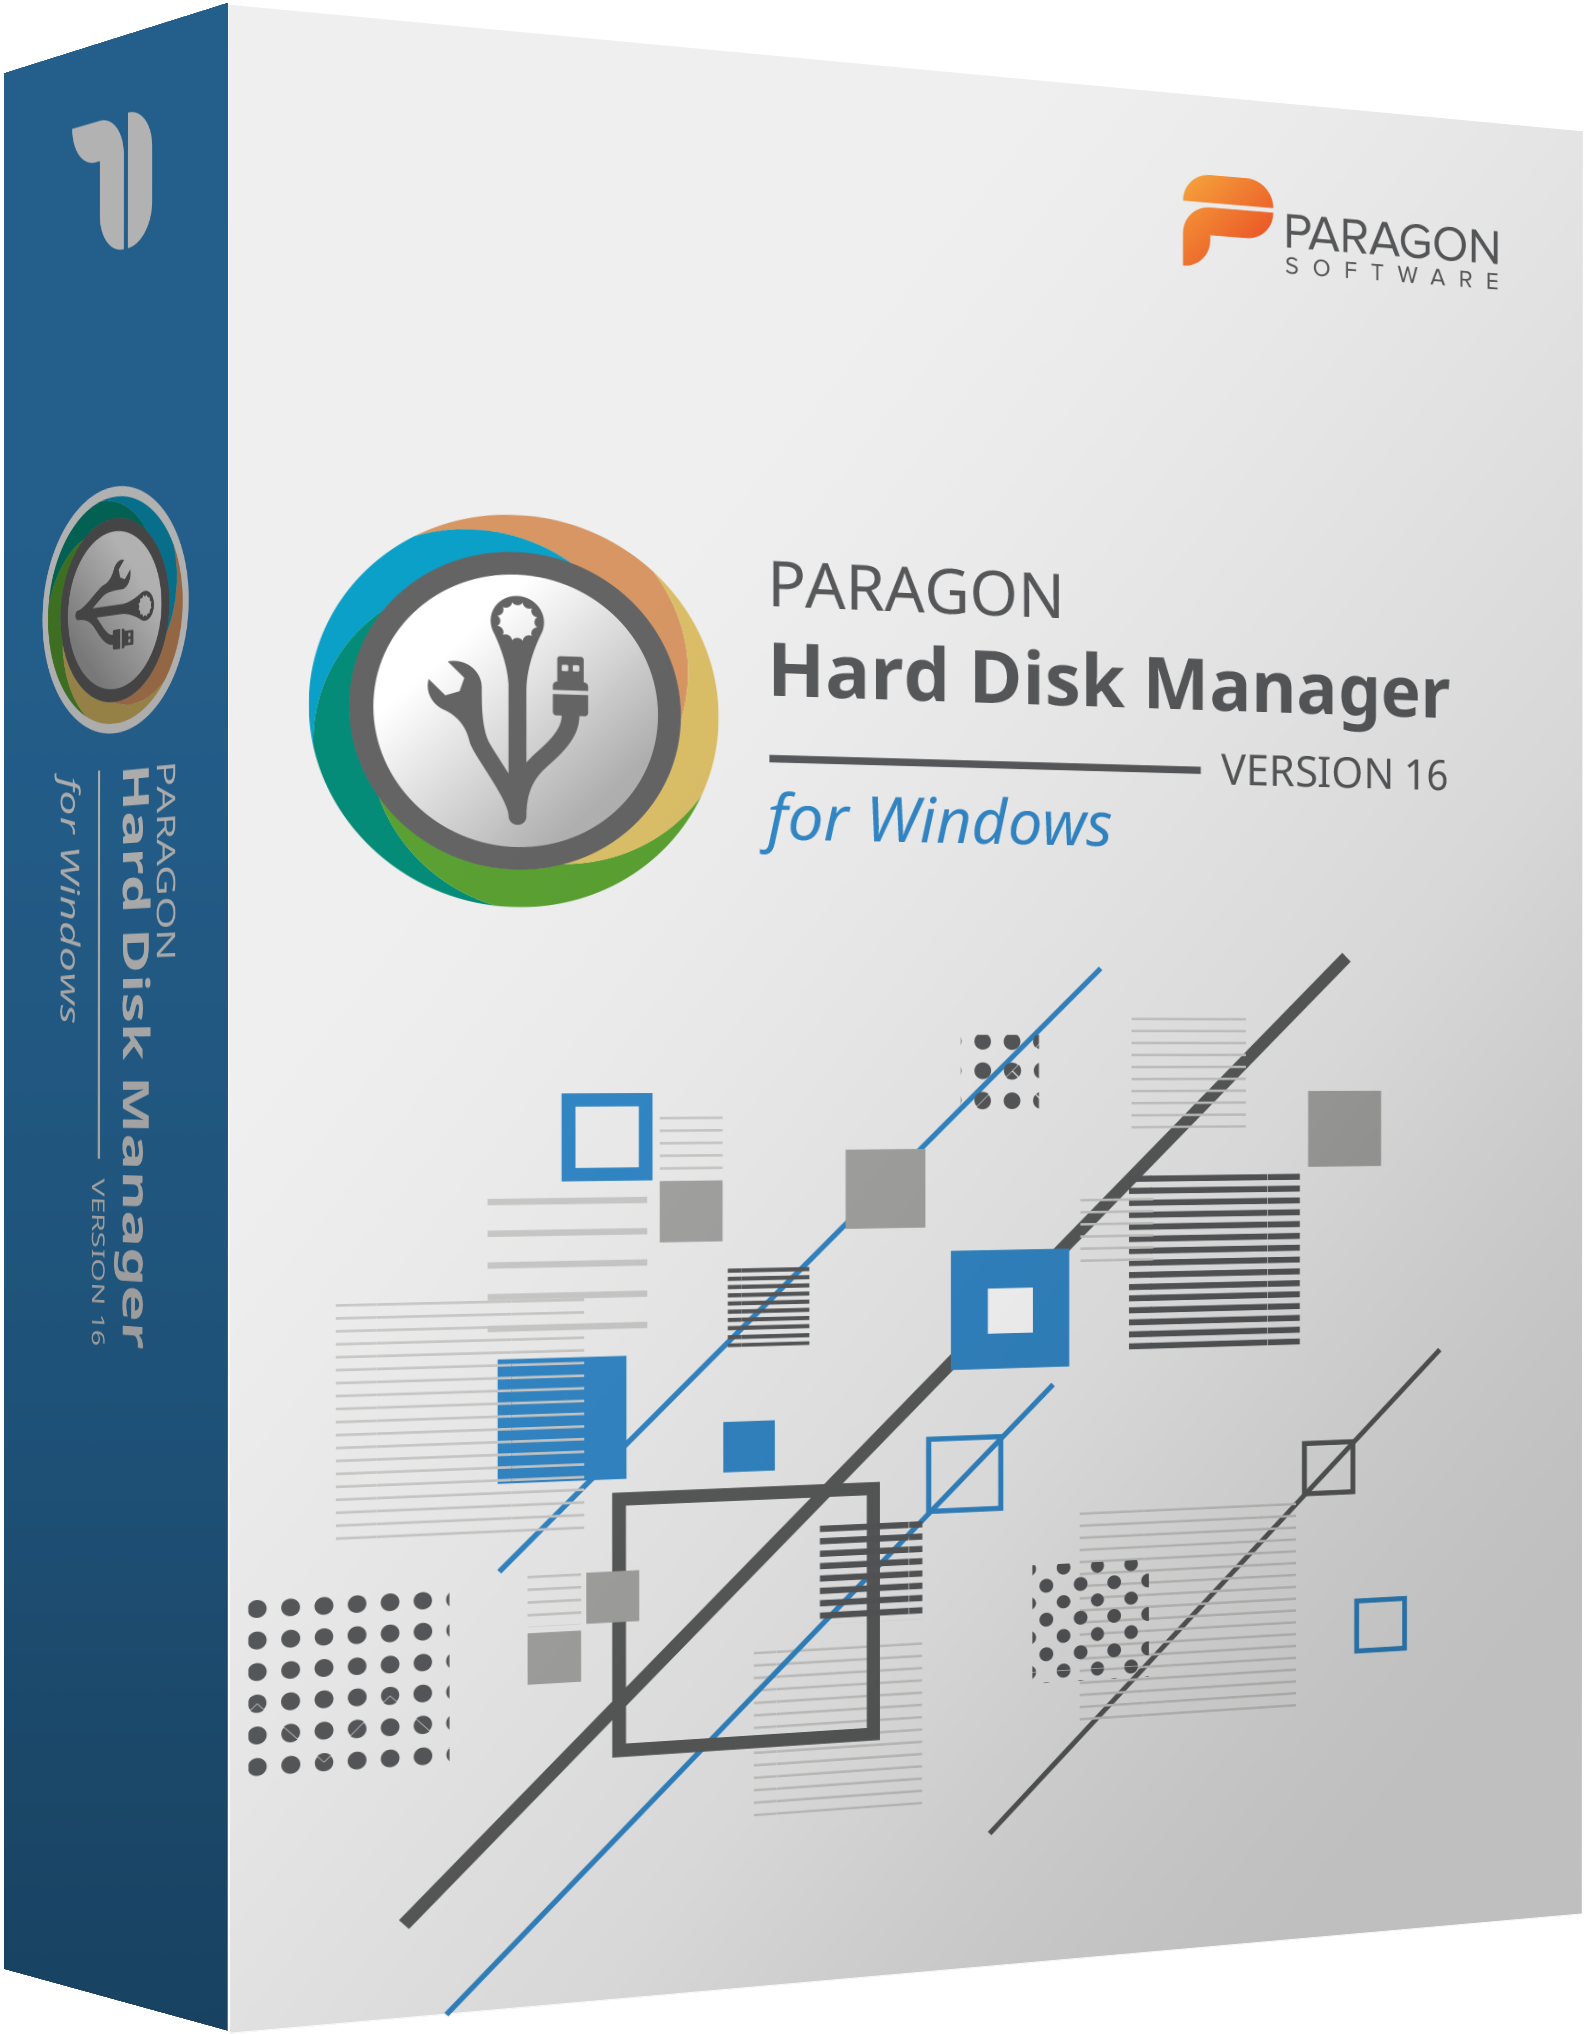 Paragon Software About Solutions Electrical Global Offices Download Center